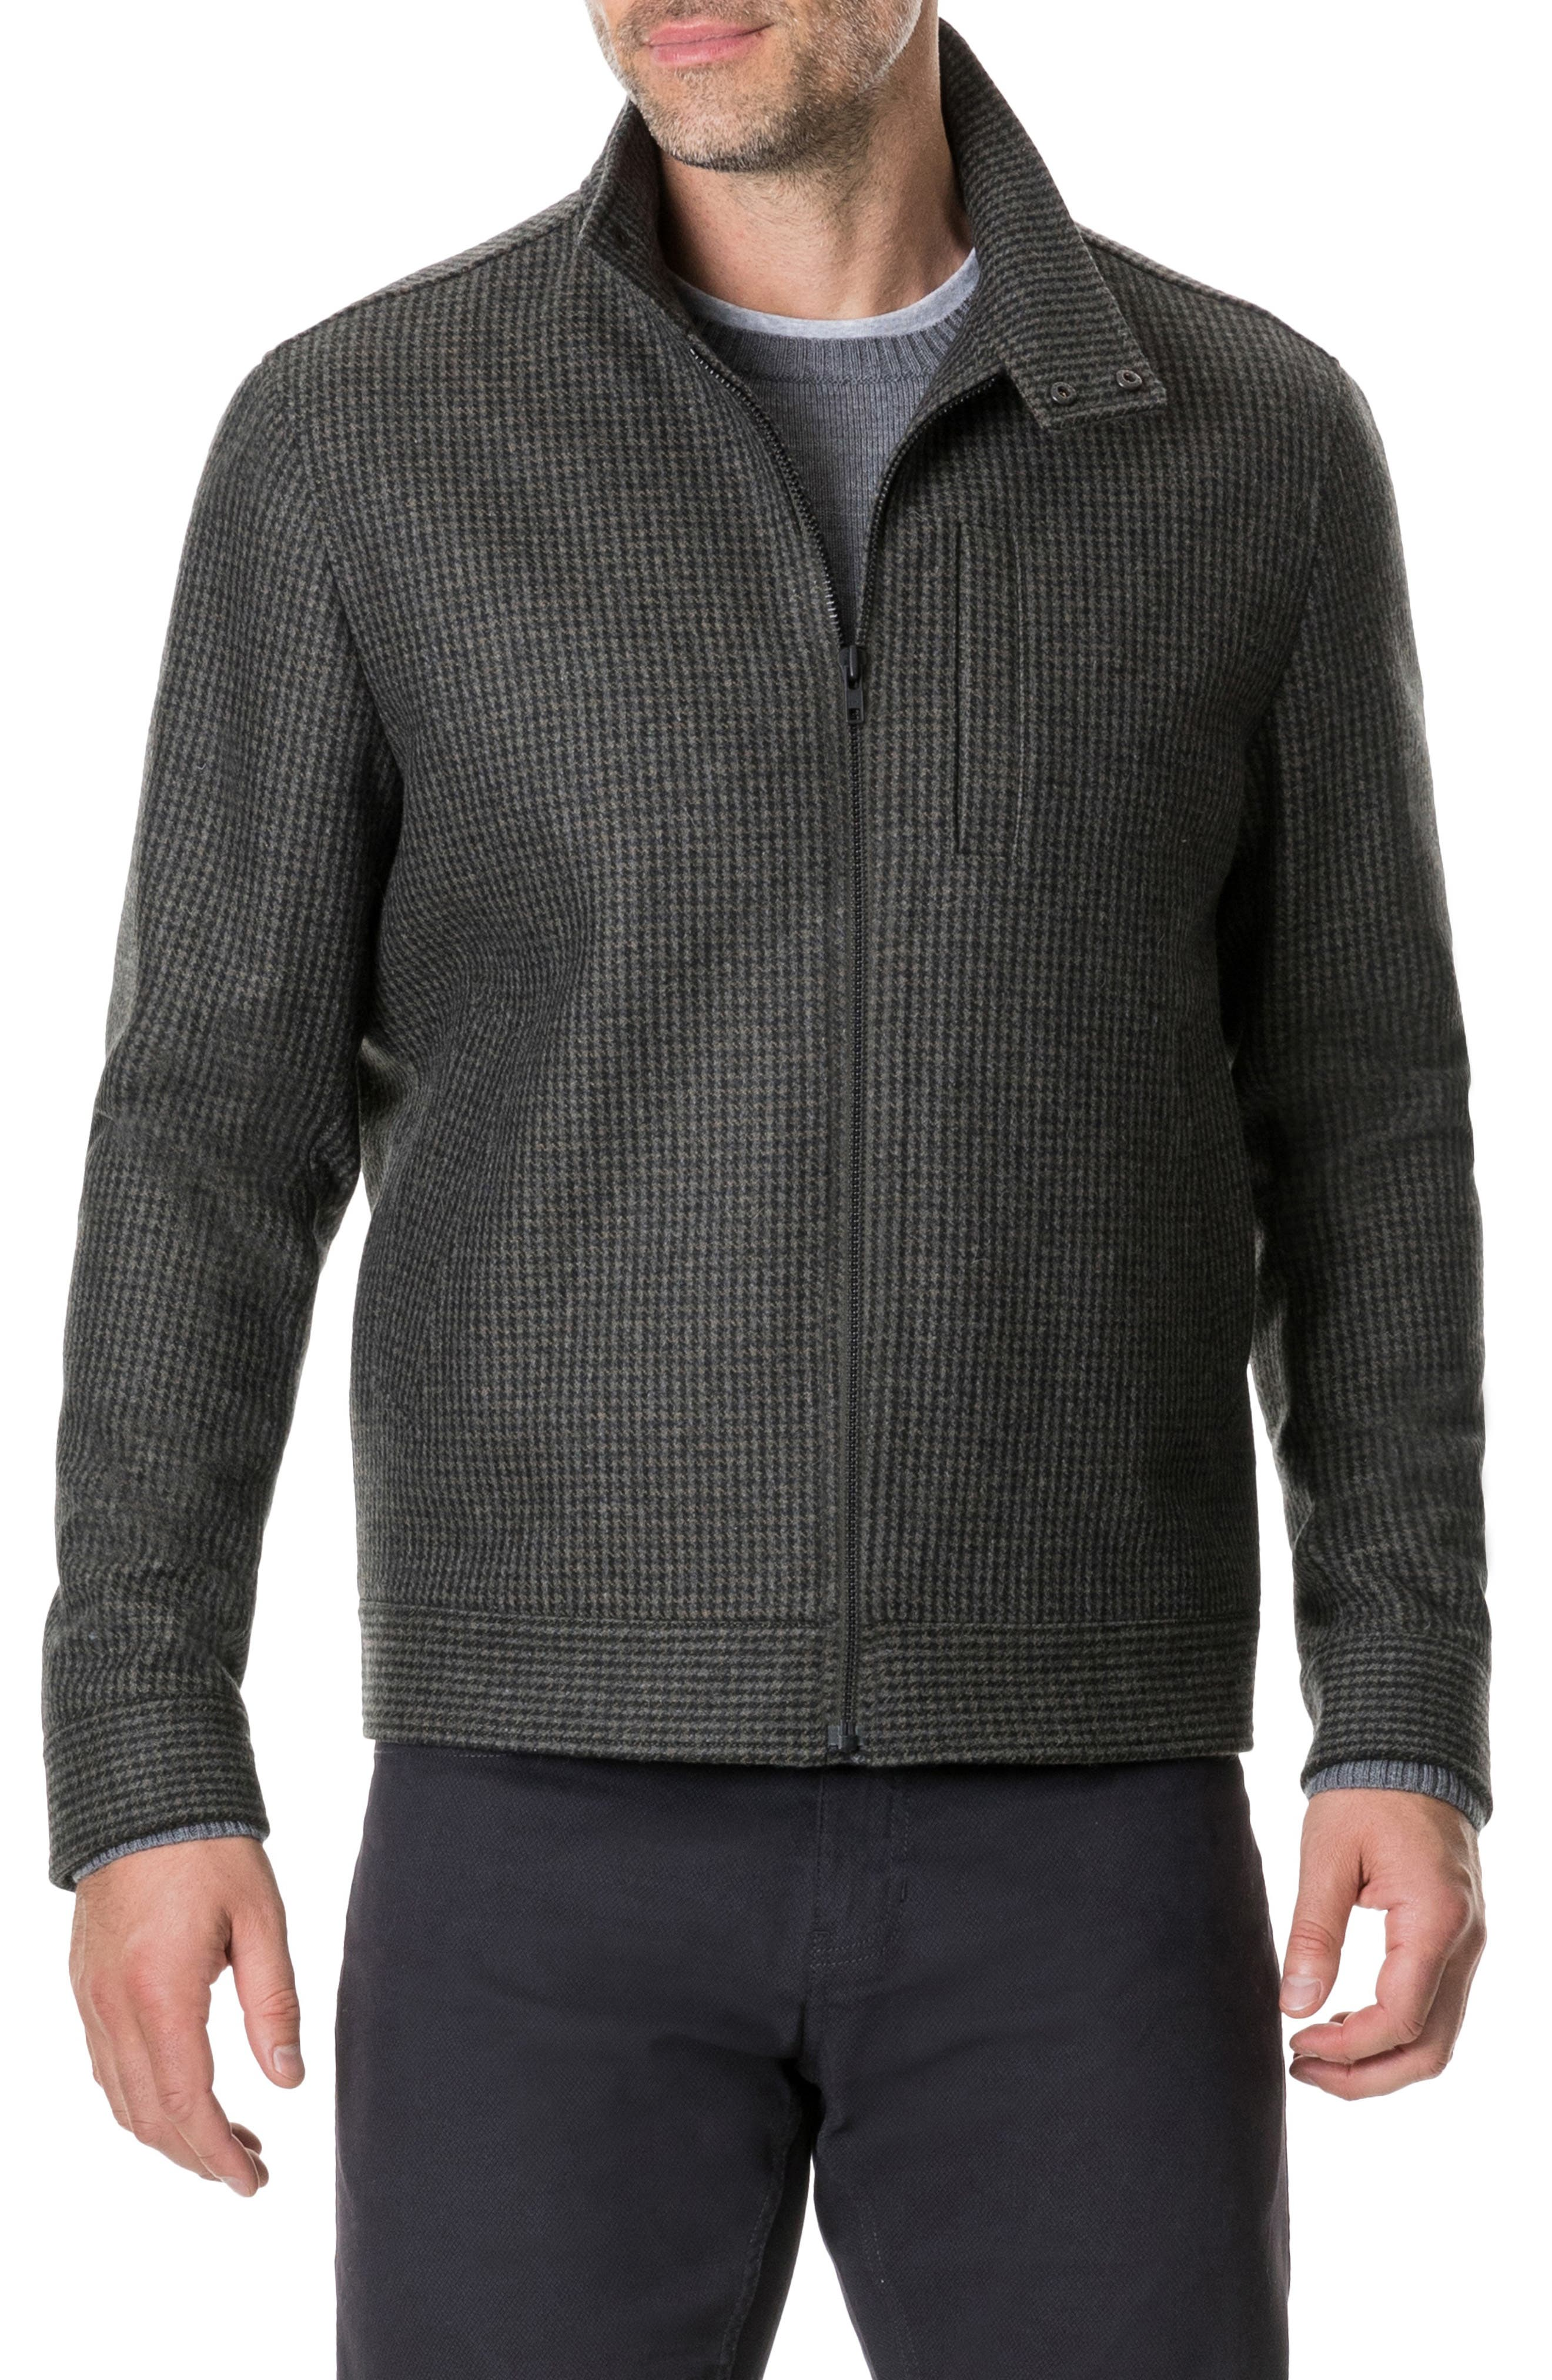 Oyster Cove Regular Fit Wool Blend Jacket,                             Main thumbnail 1, color,                             OLIVE